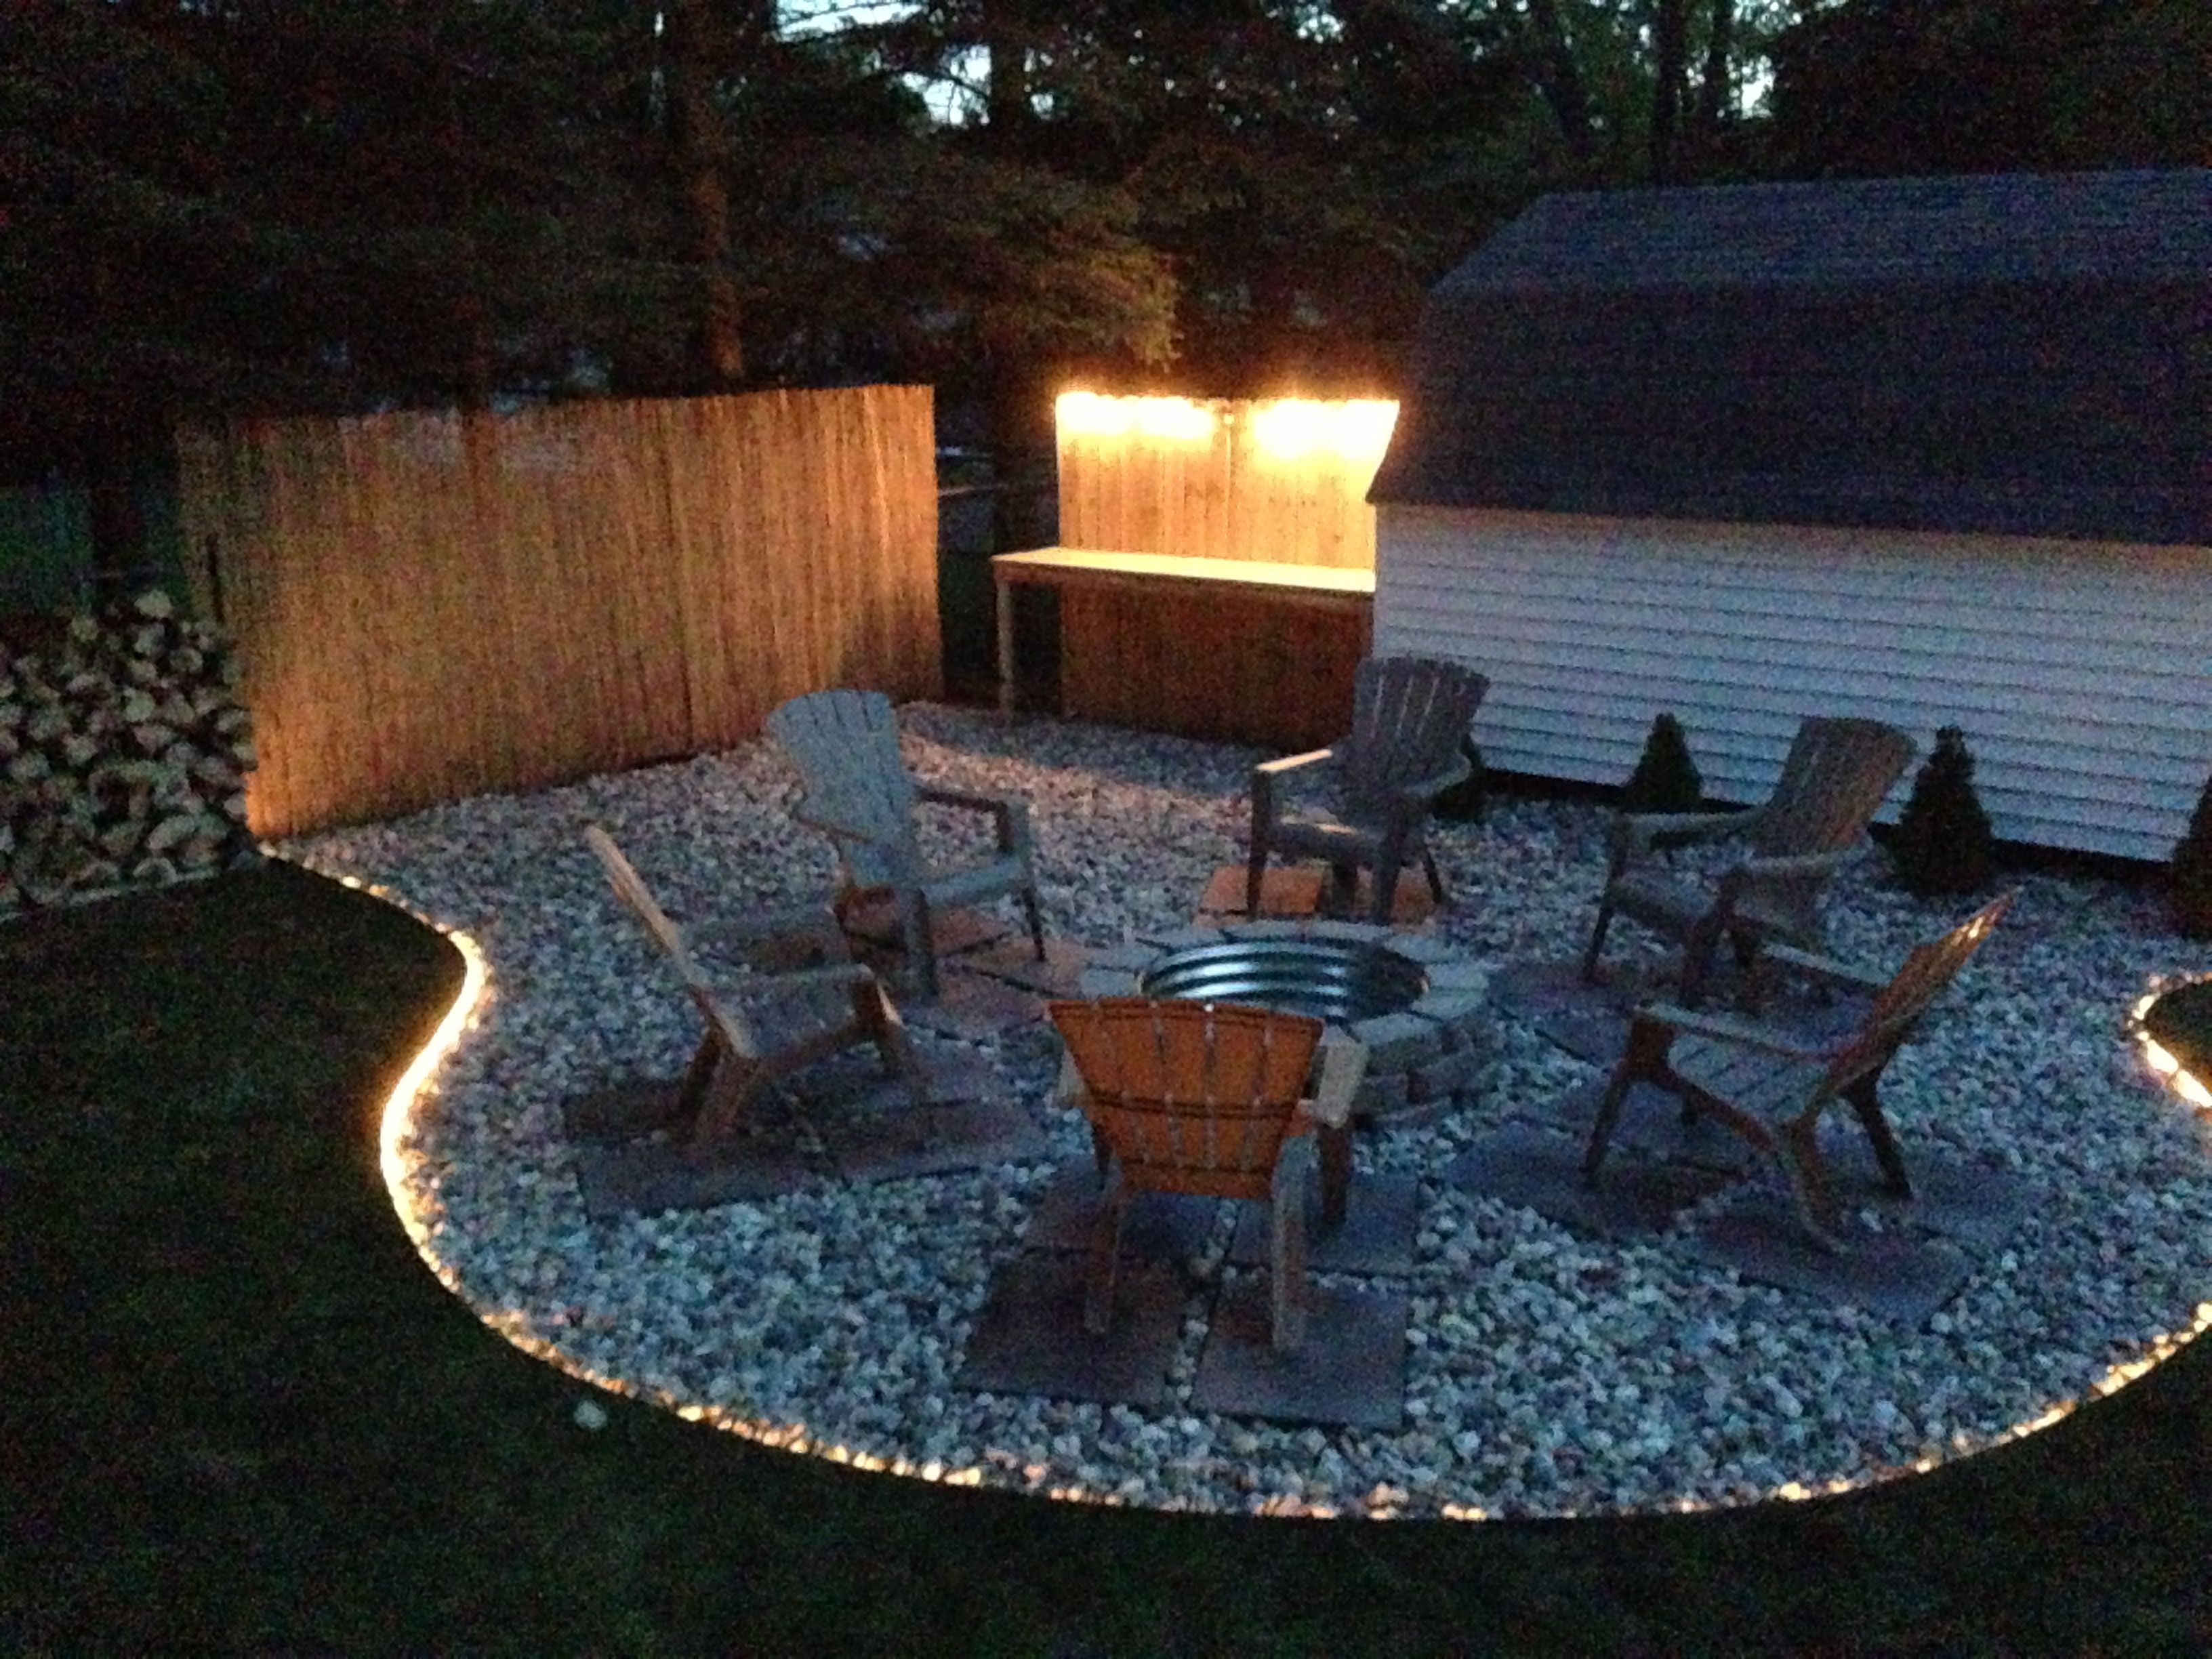 Ideas for fire pits in backyard ztil news - Small backyard fire pit ideas ...